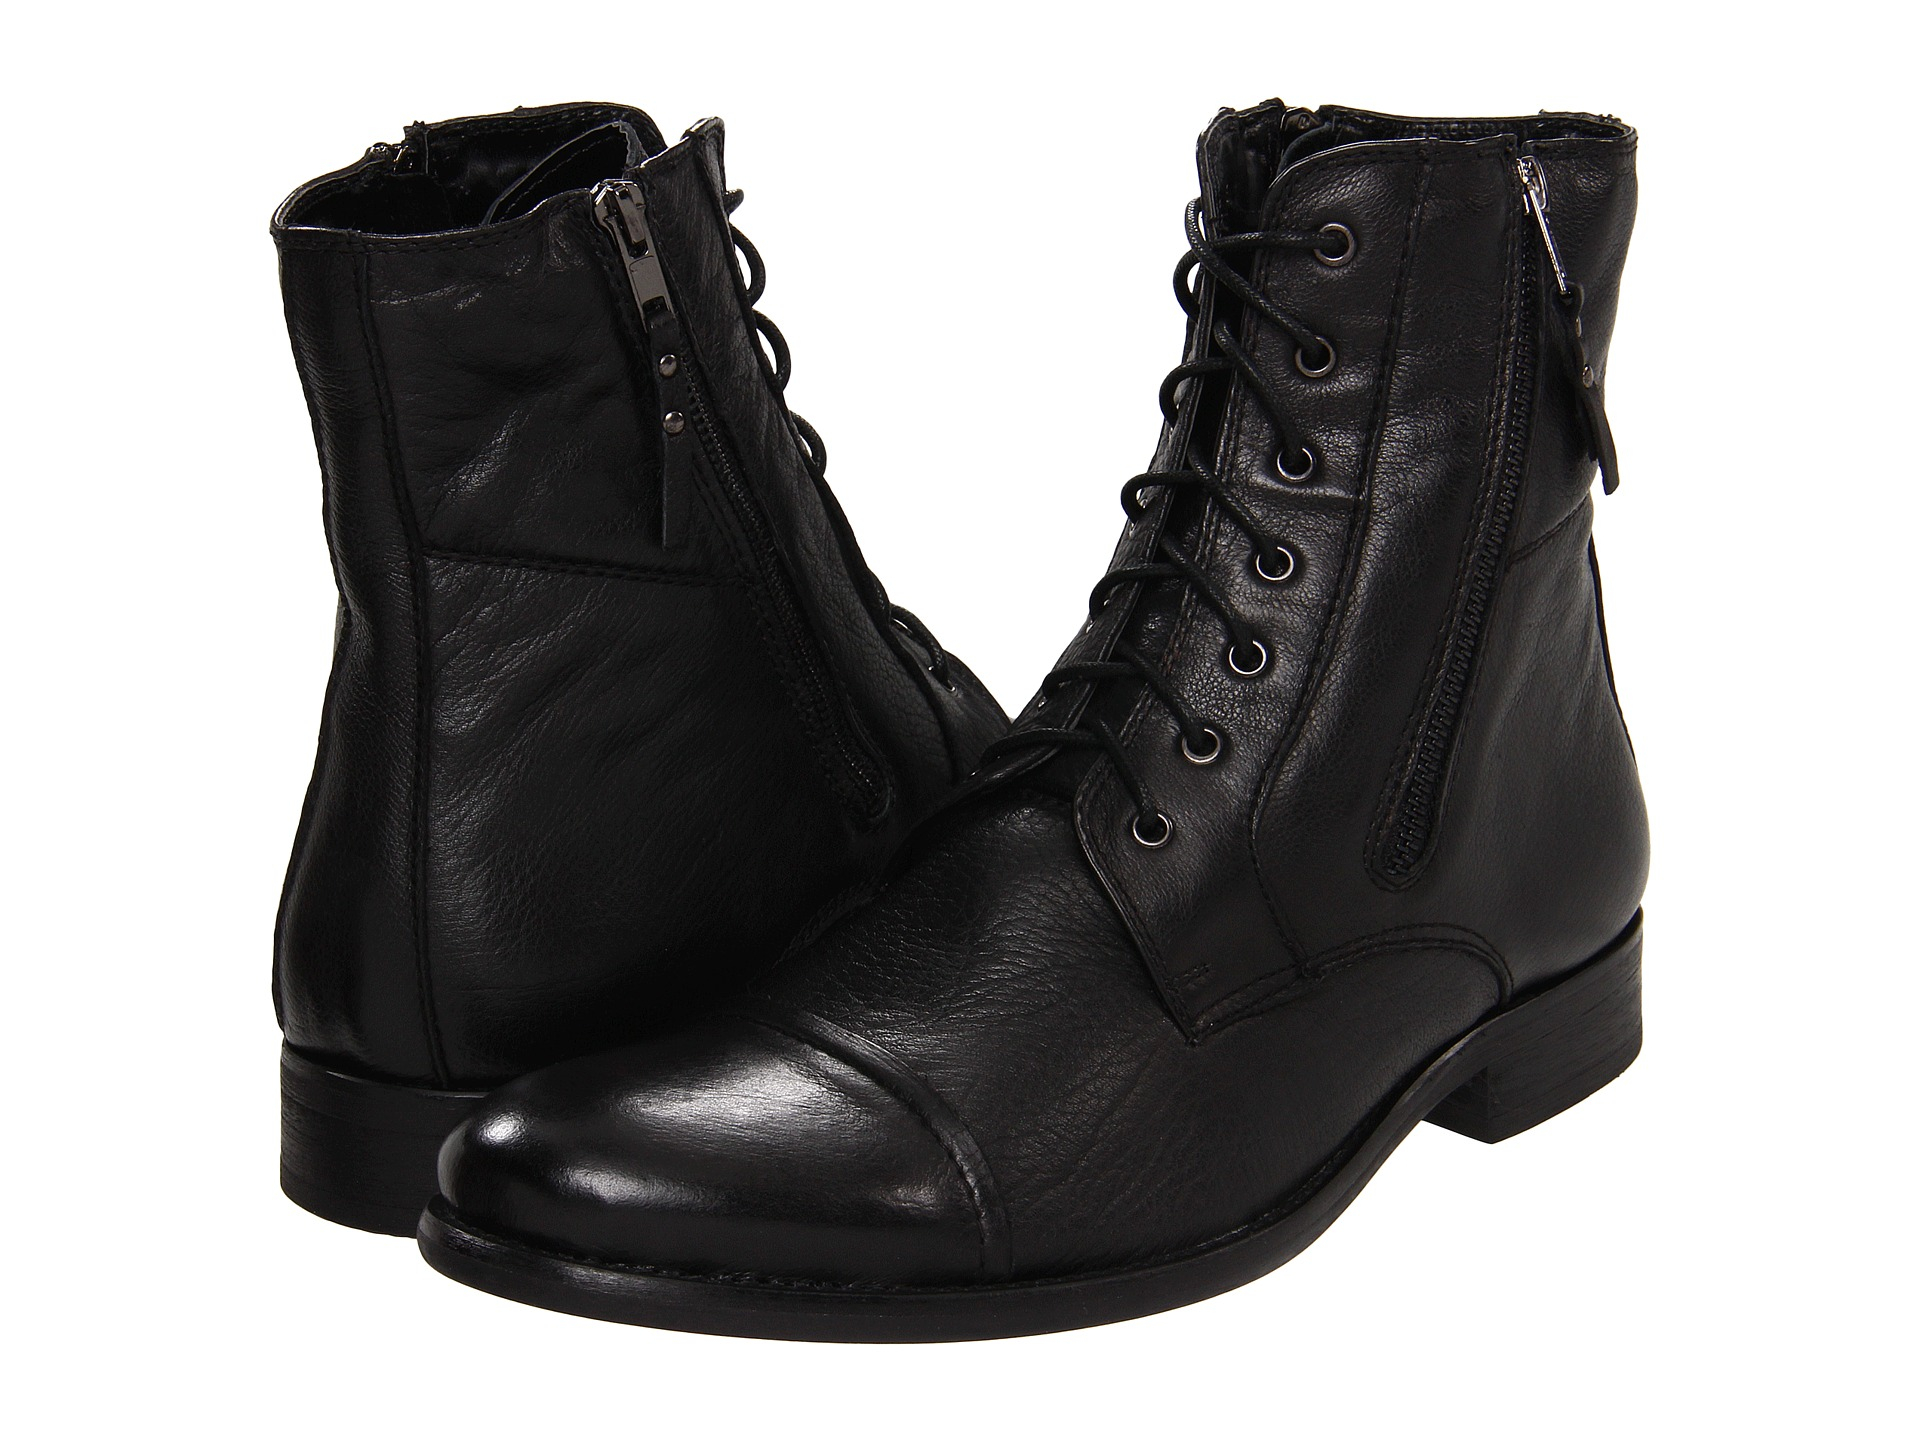 Kenneth Cole Reaction Boots For Men Images